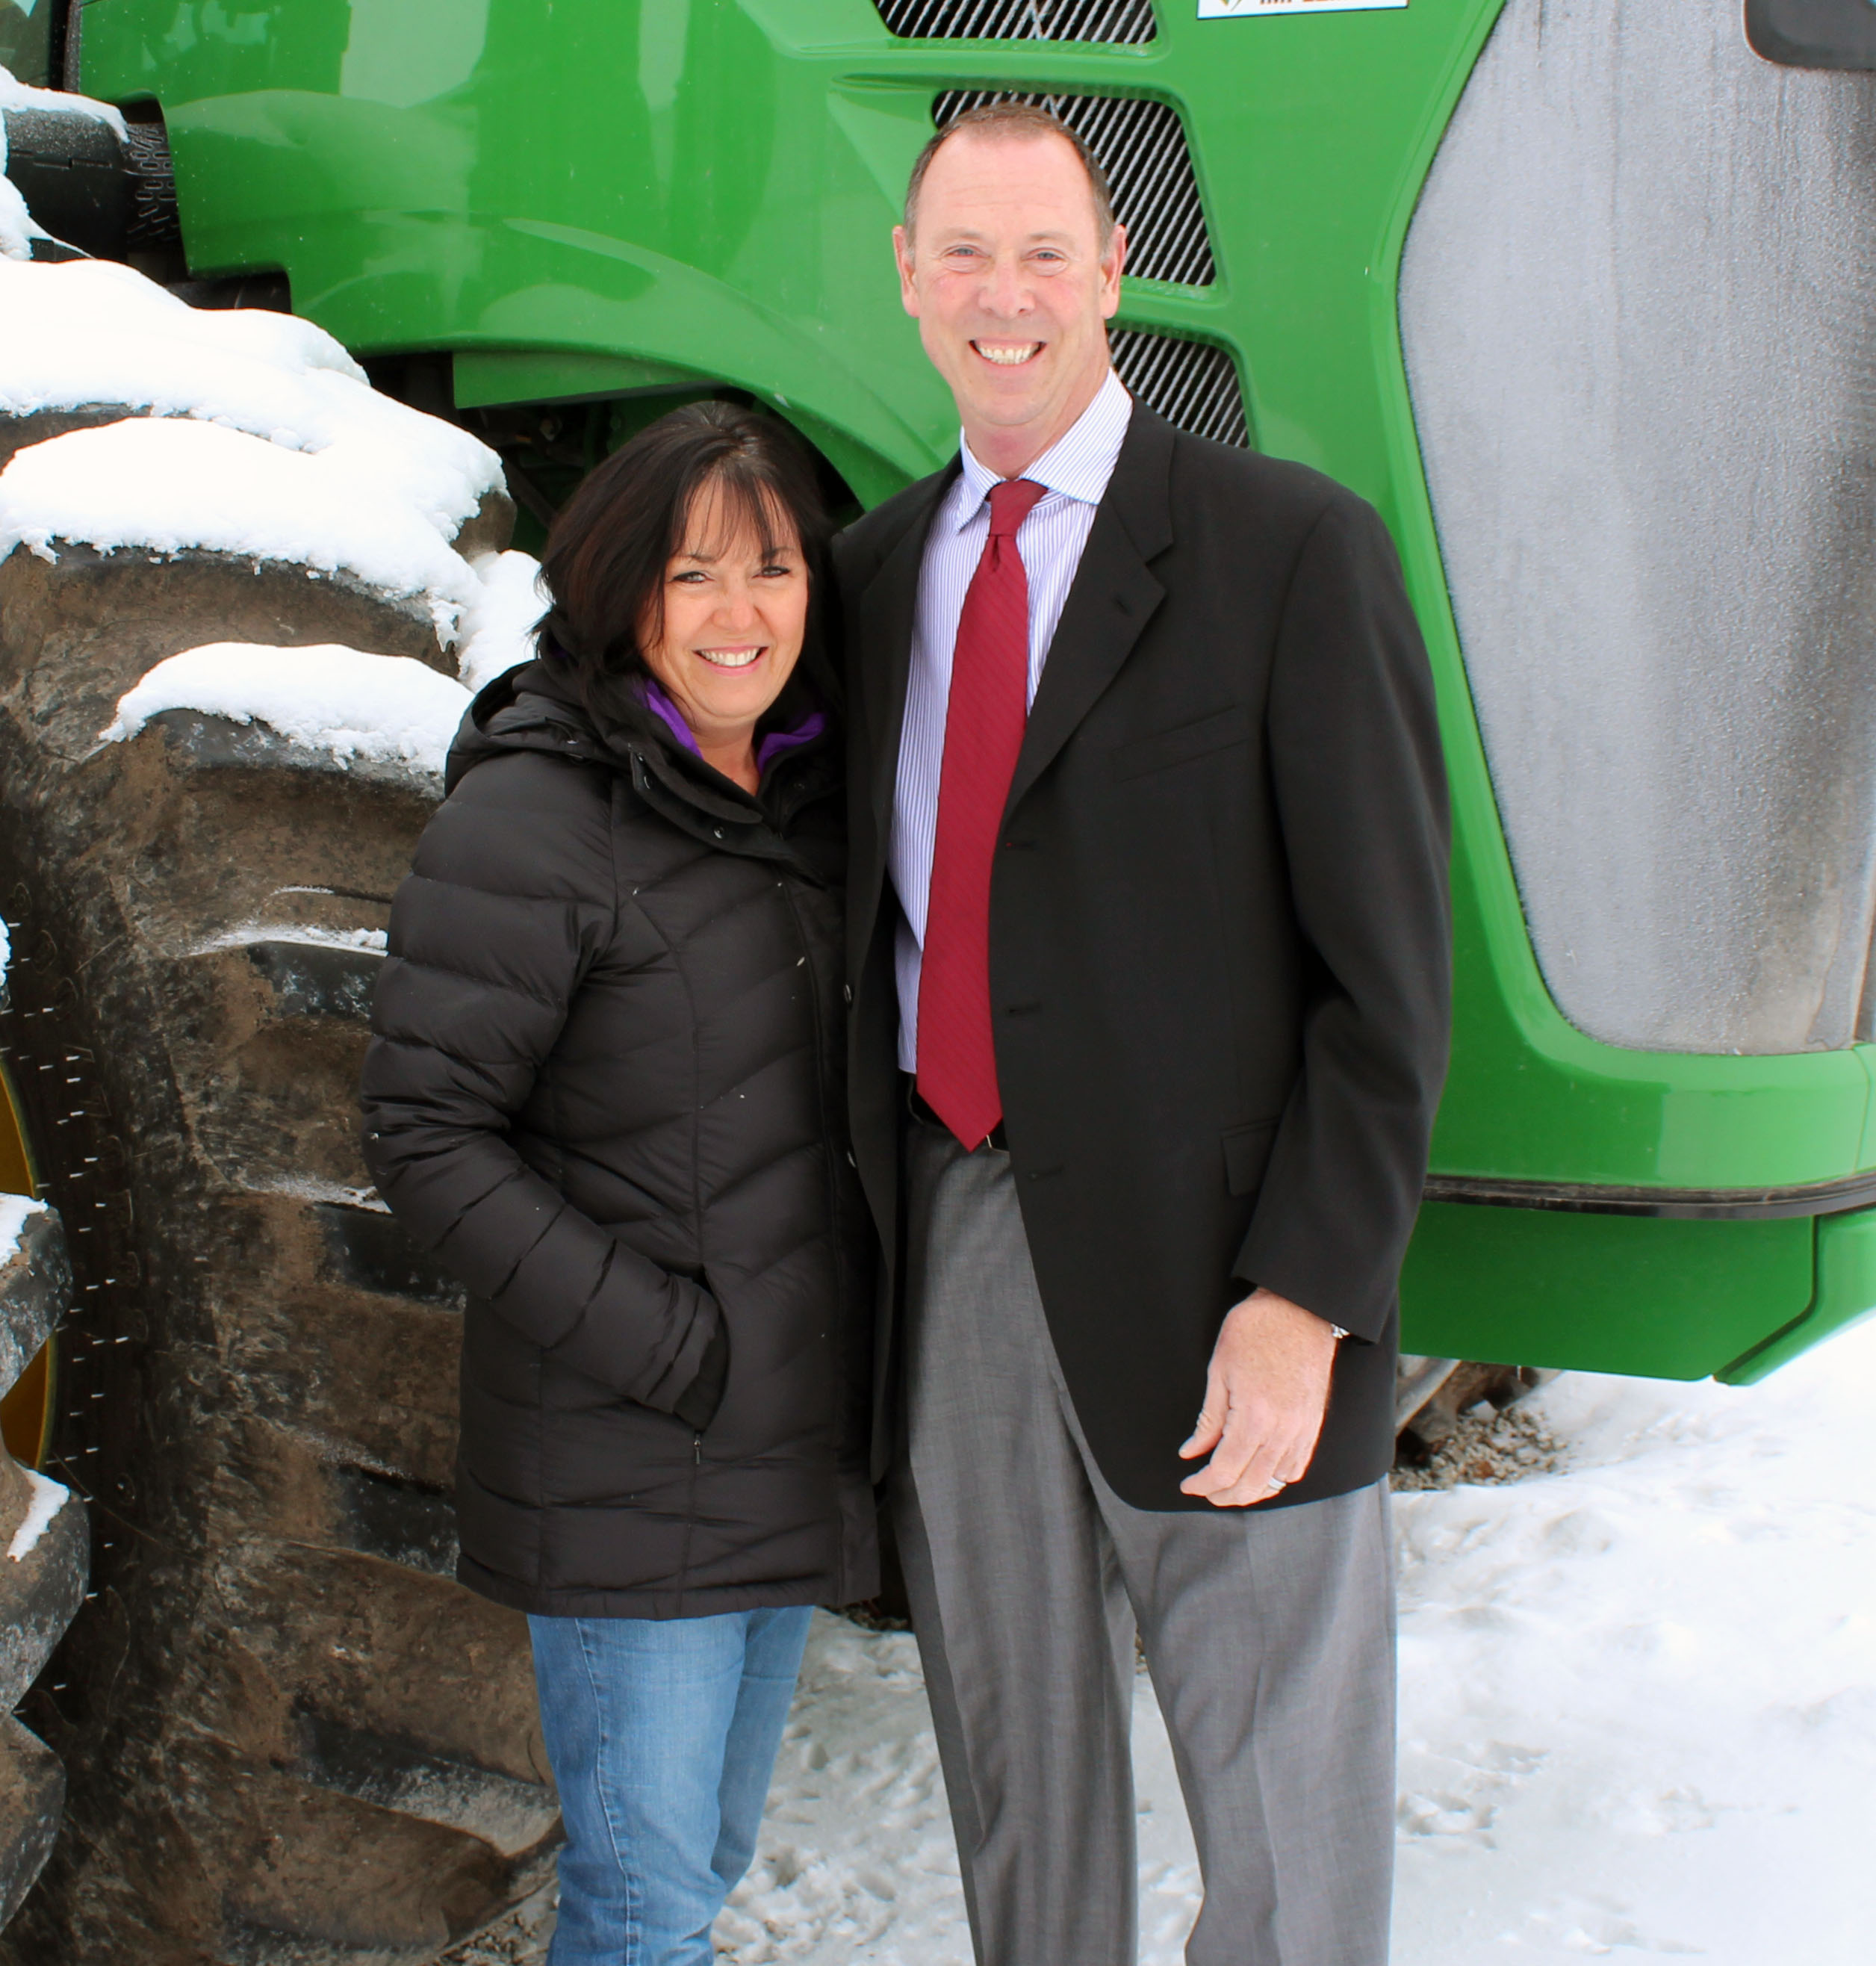 Kathy and Larry bennett standing in front of tractor